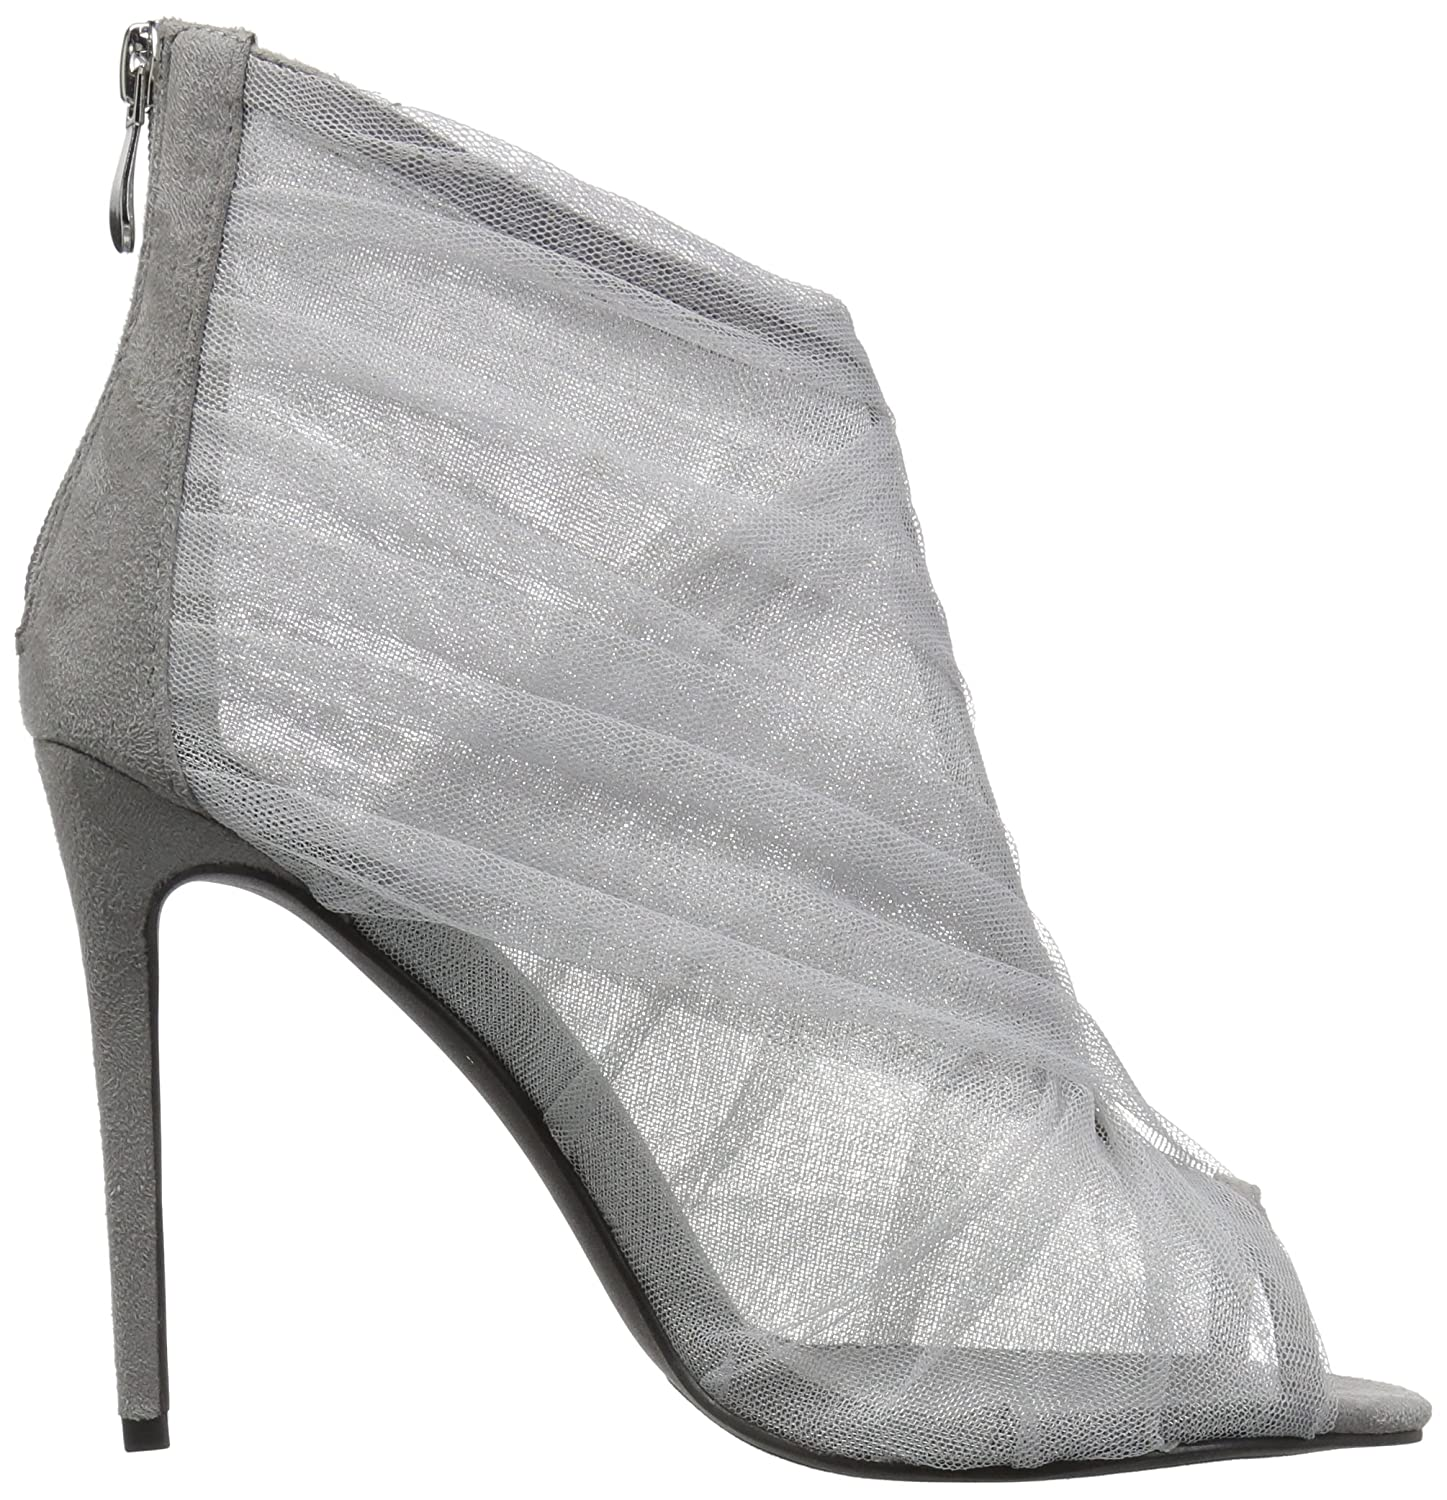 Penny Loves Kenny Women's Skylar Pump B07CV6RVVZ 9 M US|Grey Mesh